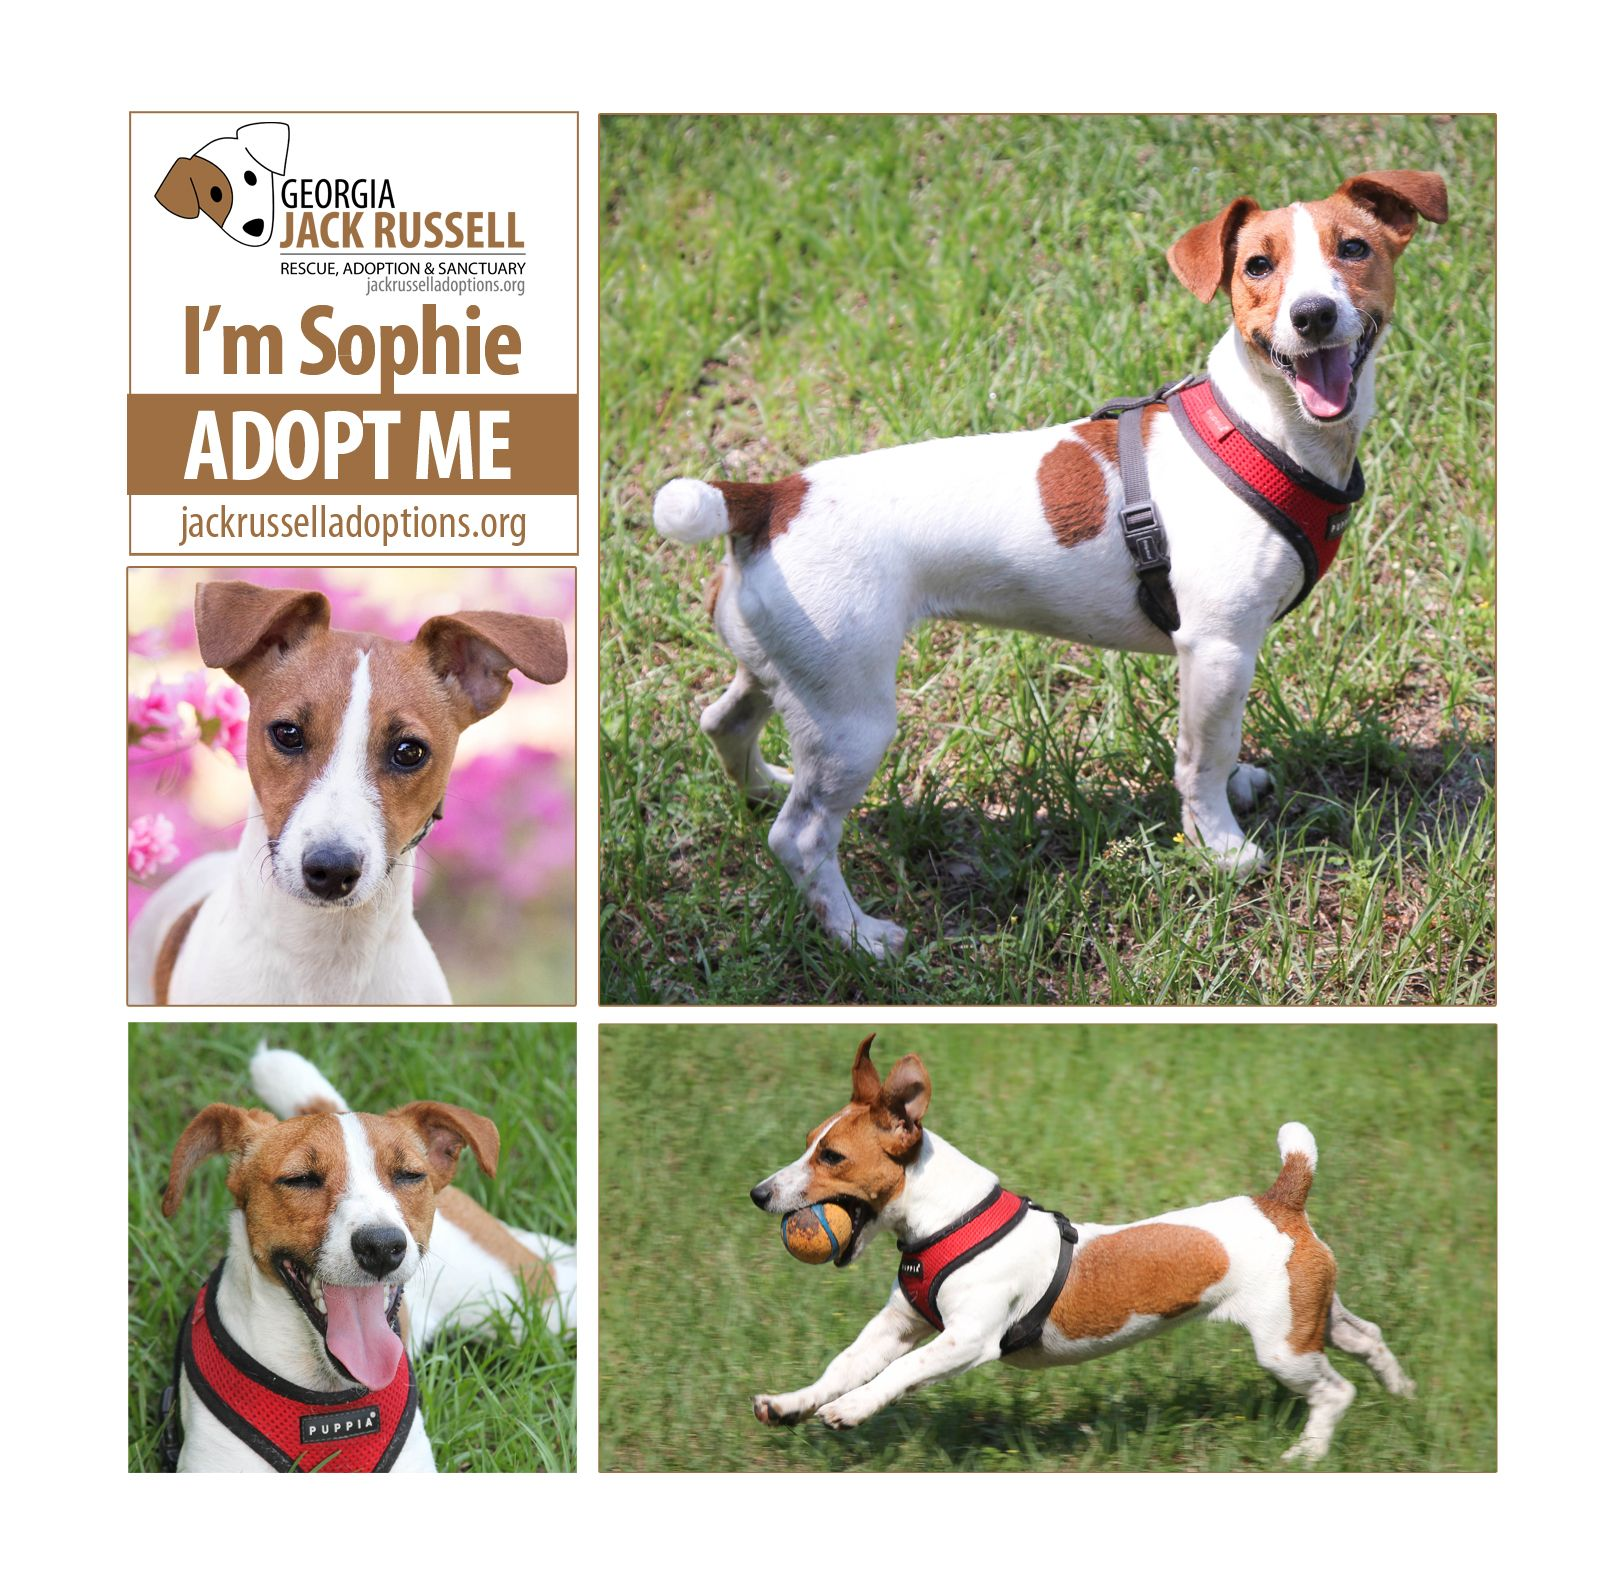 Jackrussell Fans Involved In Racing Agility Or Flyball Sophie Girl Has It All Adoptterrier Jack Russell Jack Russell Terrier Cute Dogs